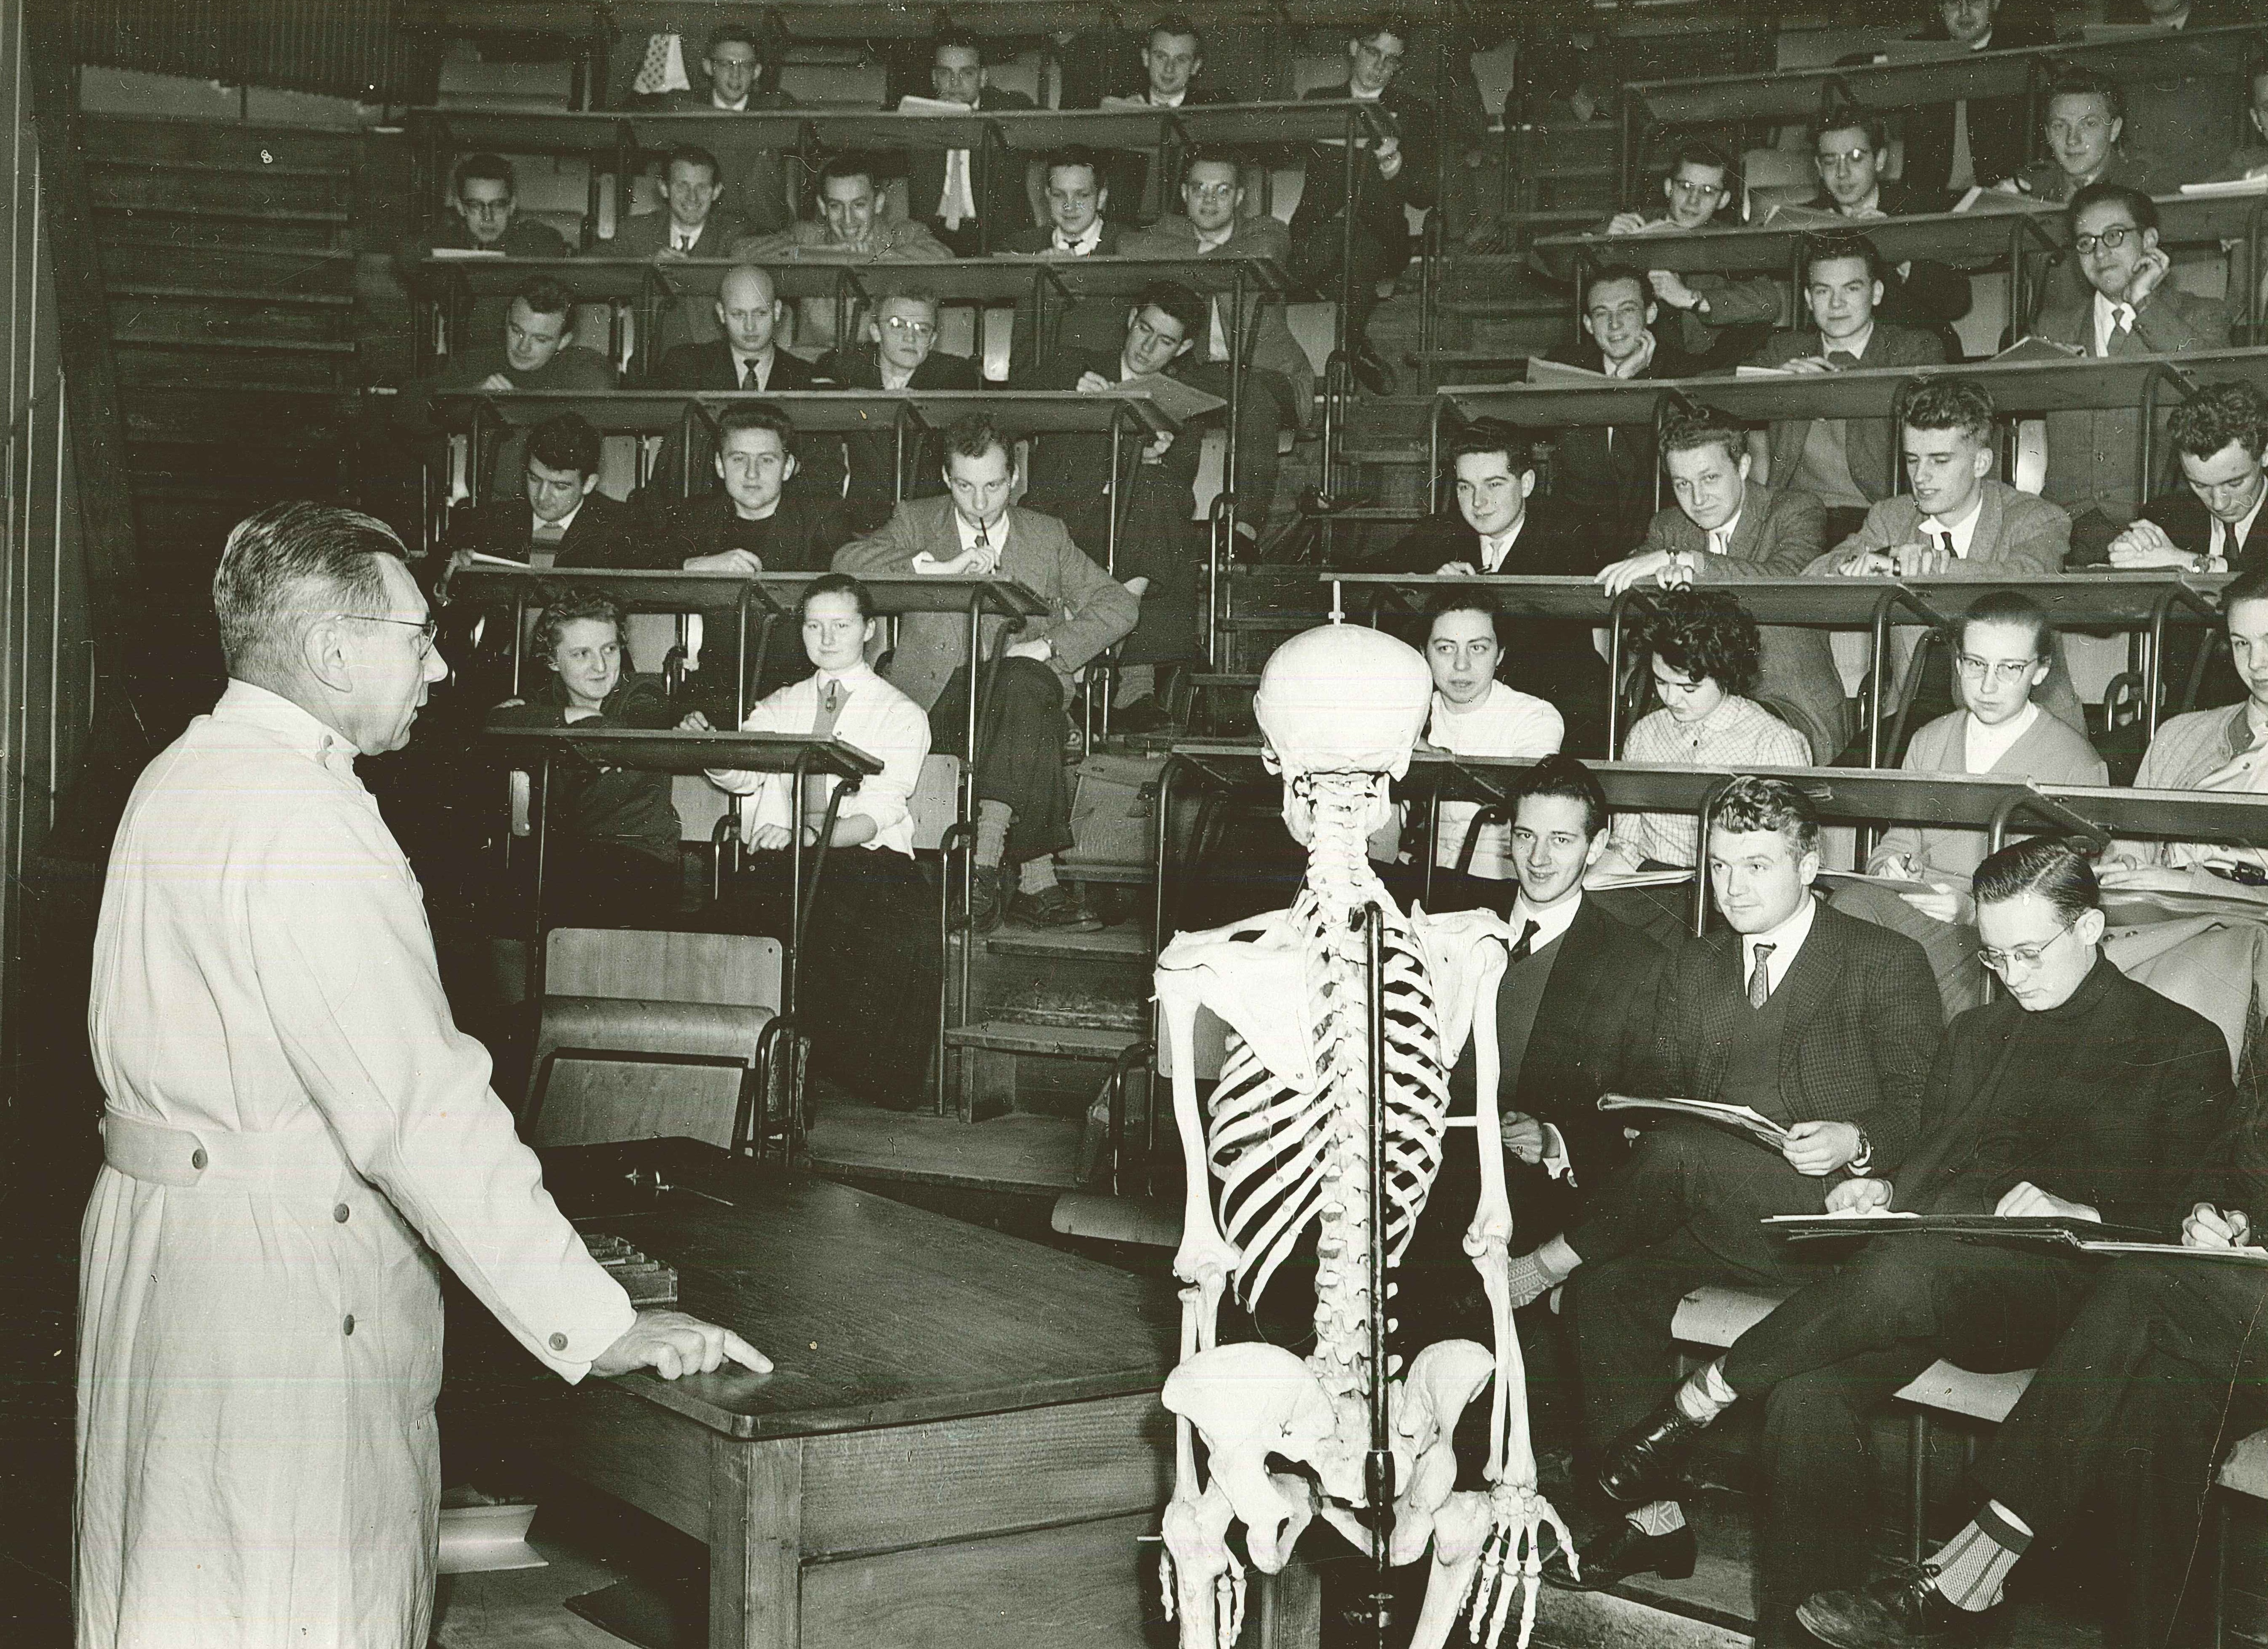 The History of Academic Medicine in Leuven in the 20th Century ...